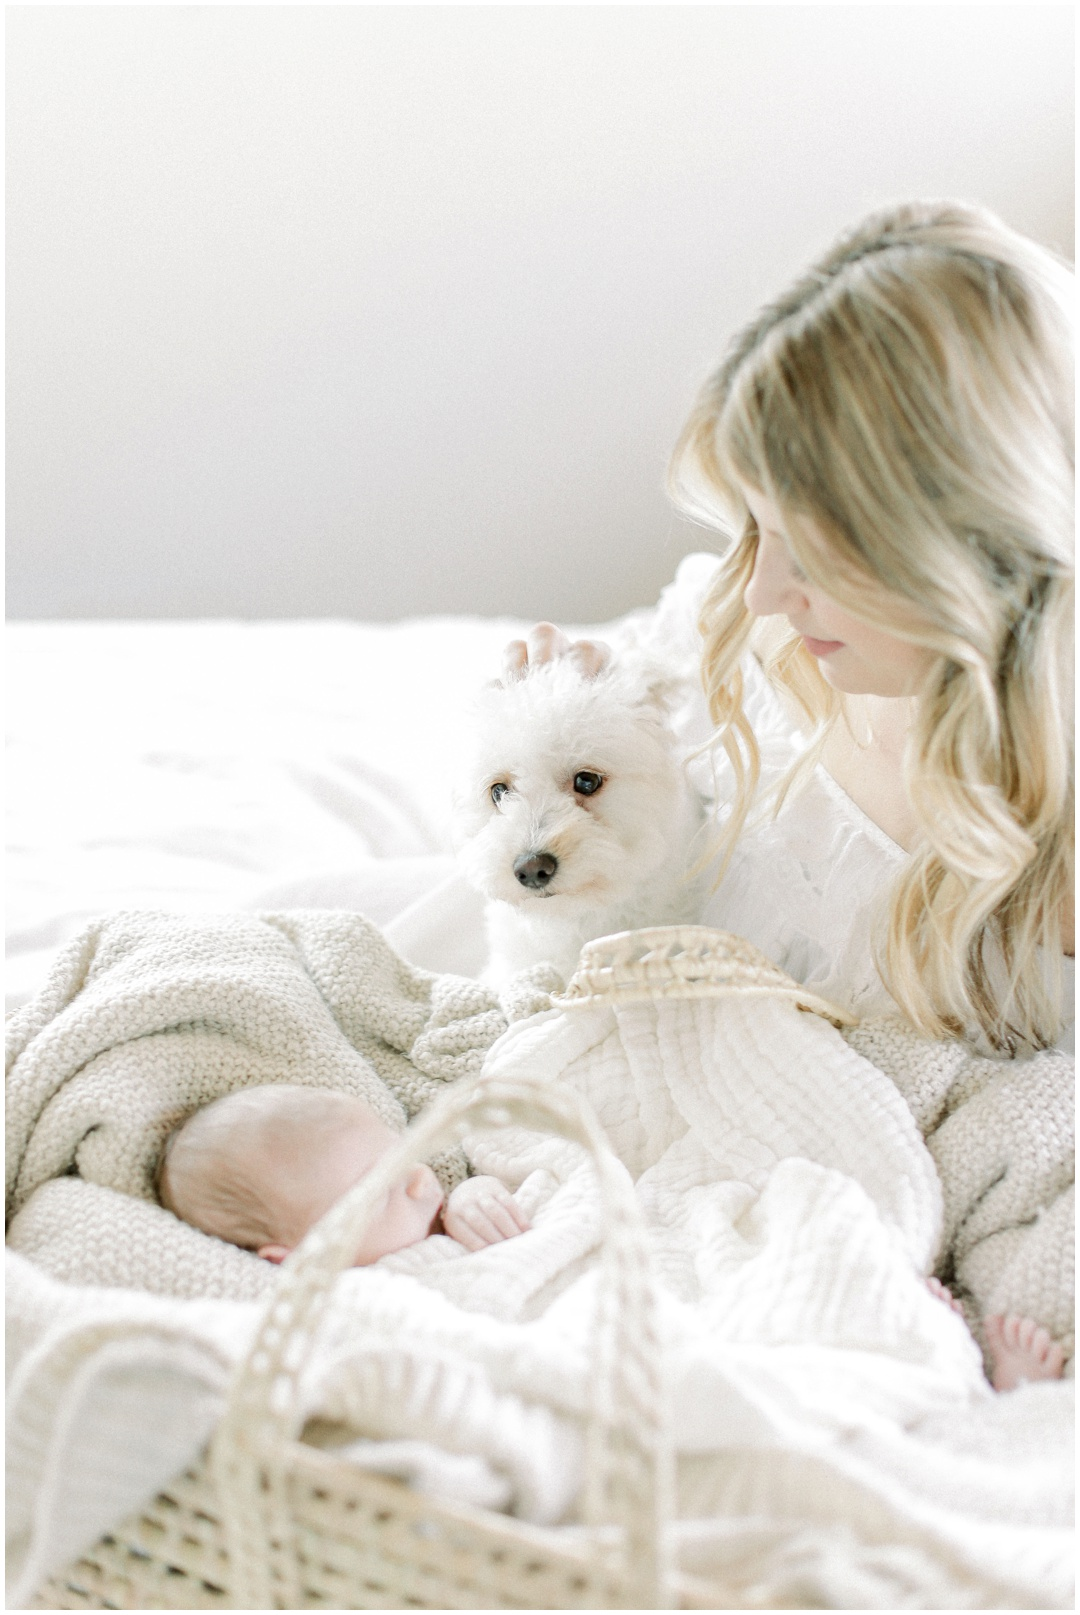 Newport_Beach_Newborn_Light_Airy_Natural_Photographer_Newport_Beach_Photographer_Orange_County_Family_Photographer_Cori_Kleckner_Photography_Huntington_Beach_Photographer_Family_OC_Newborn_Megan_Bradley_Schueneman_Charlie_Schueneman_Dean__3604.jpg